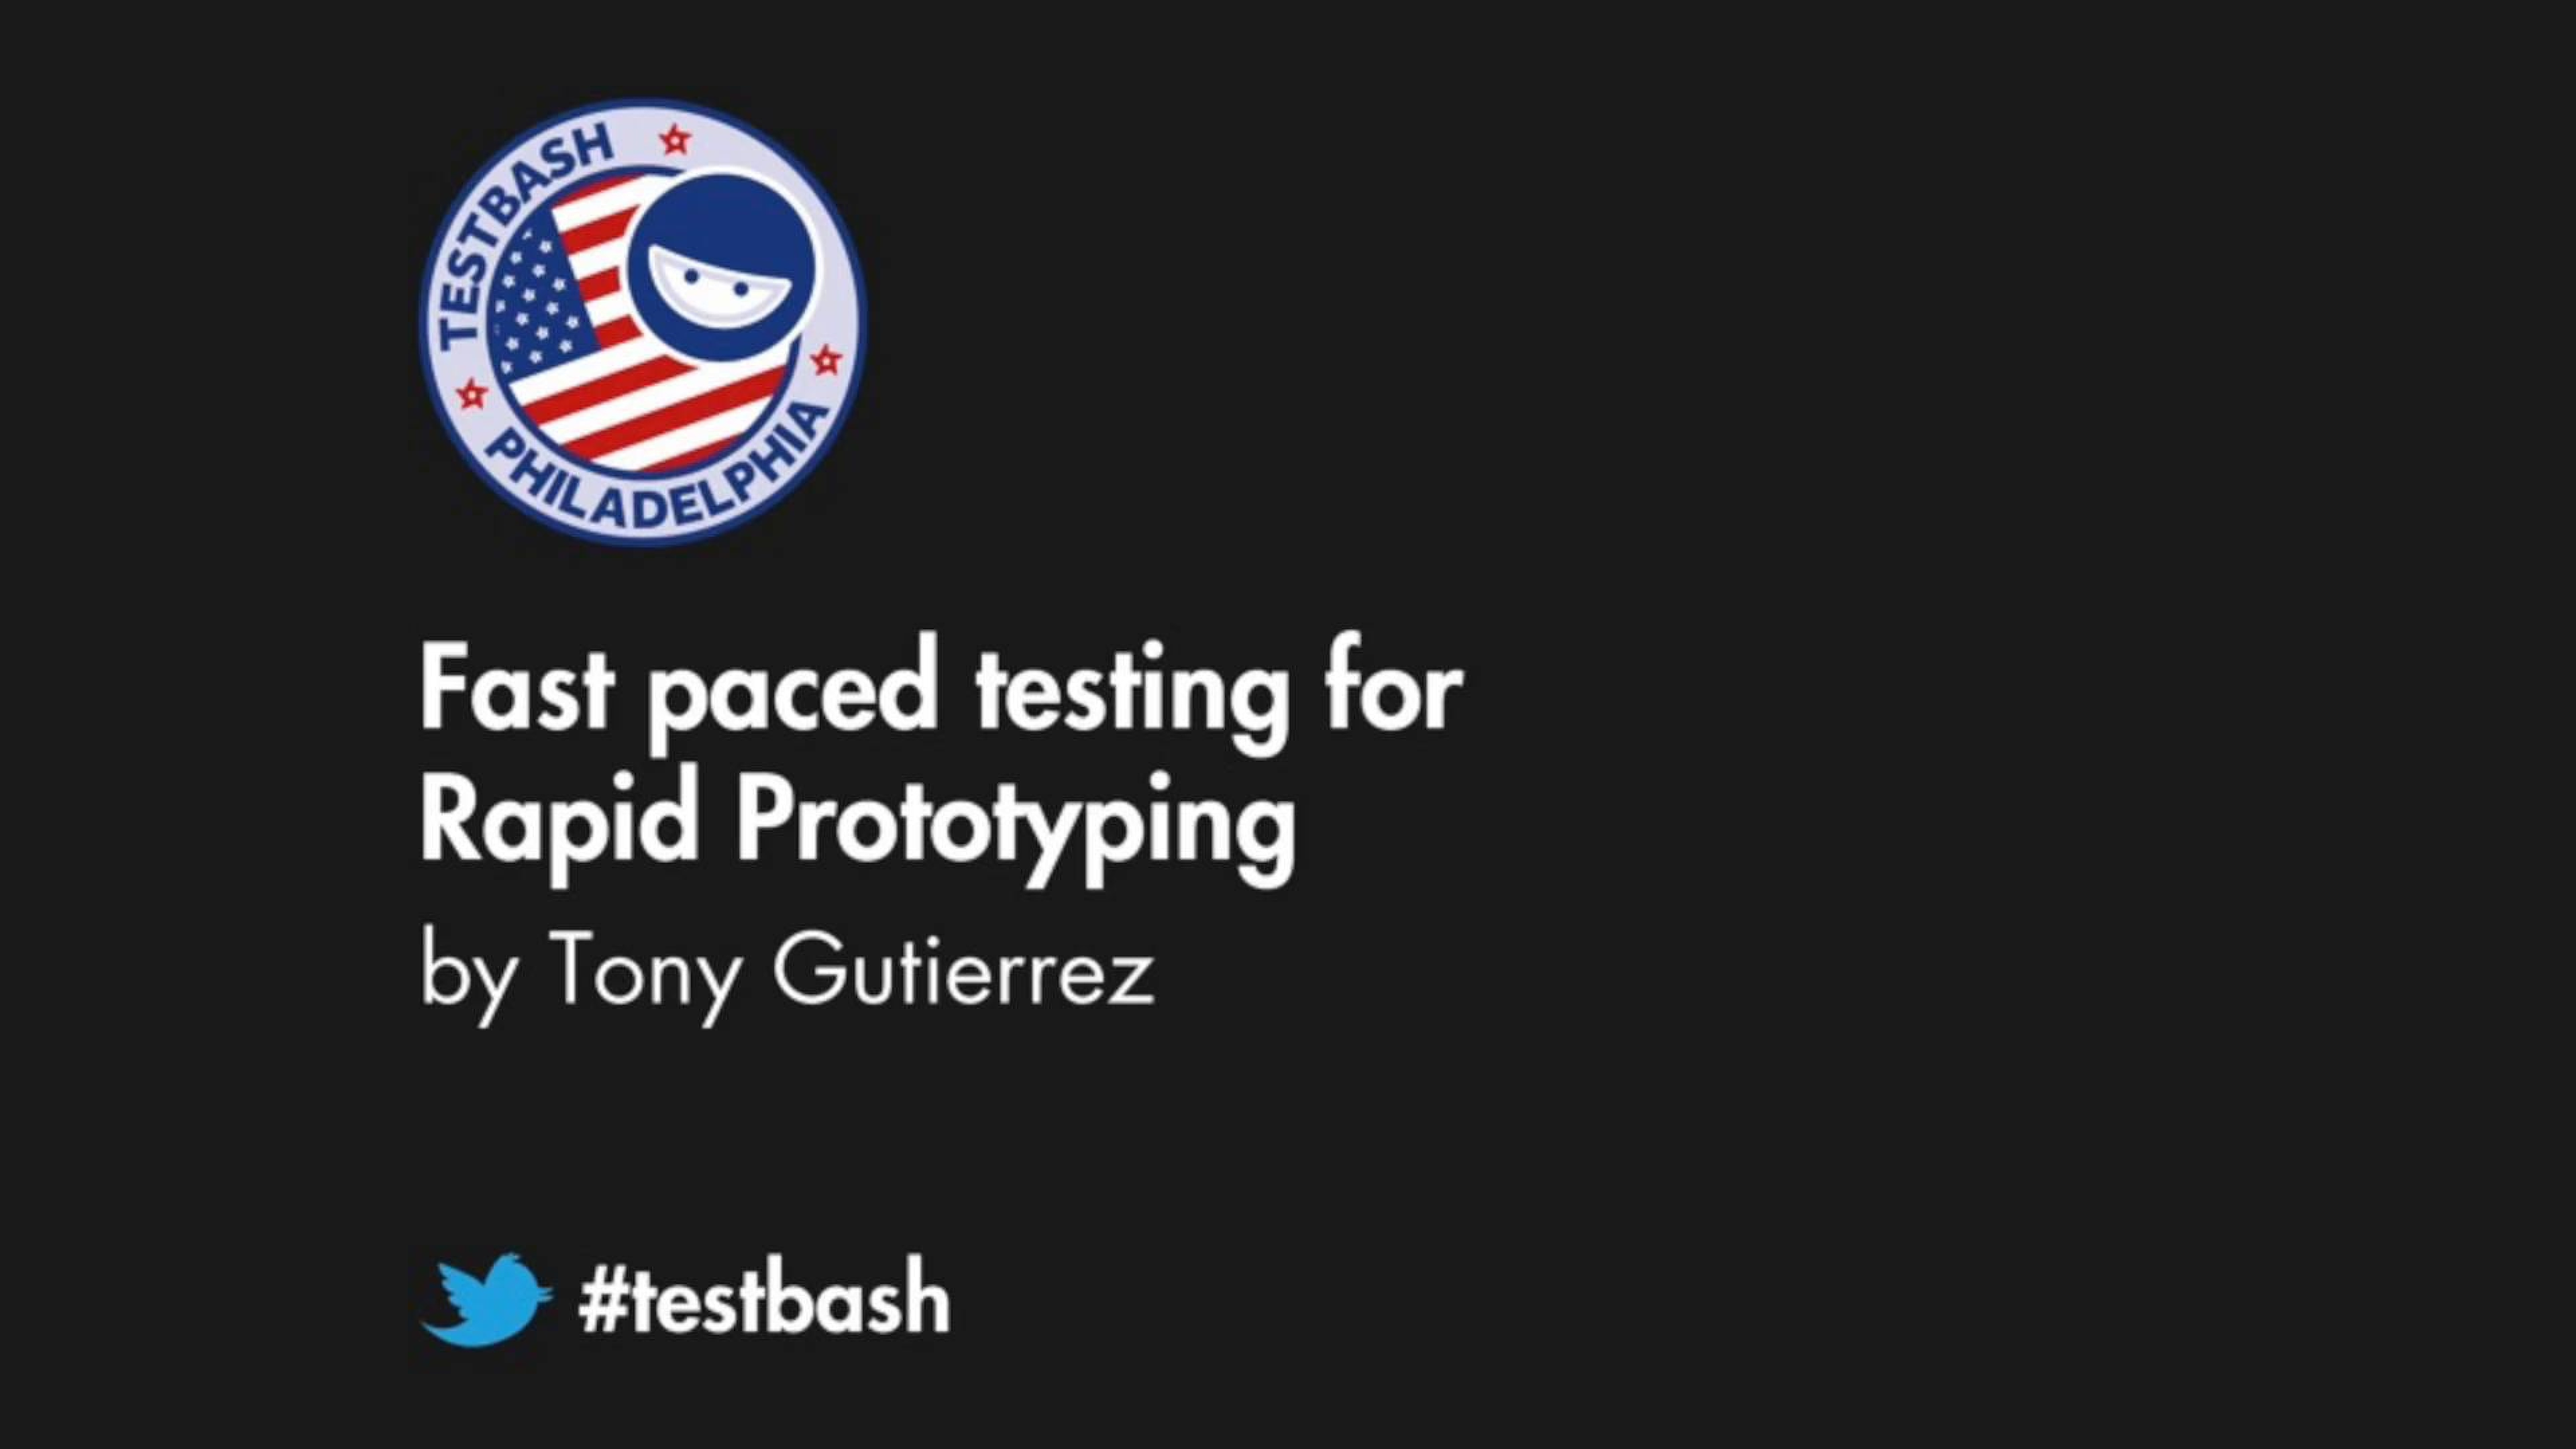 Fast Paced Testing for Rapid Prototyping - Tony Gutierrez